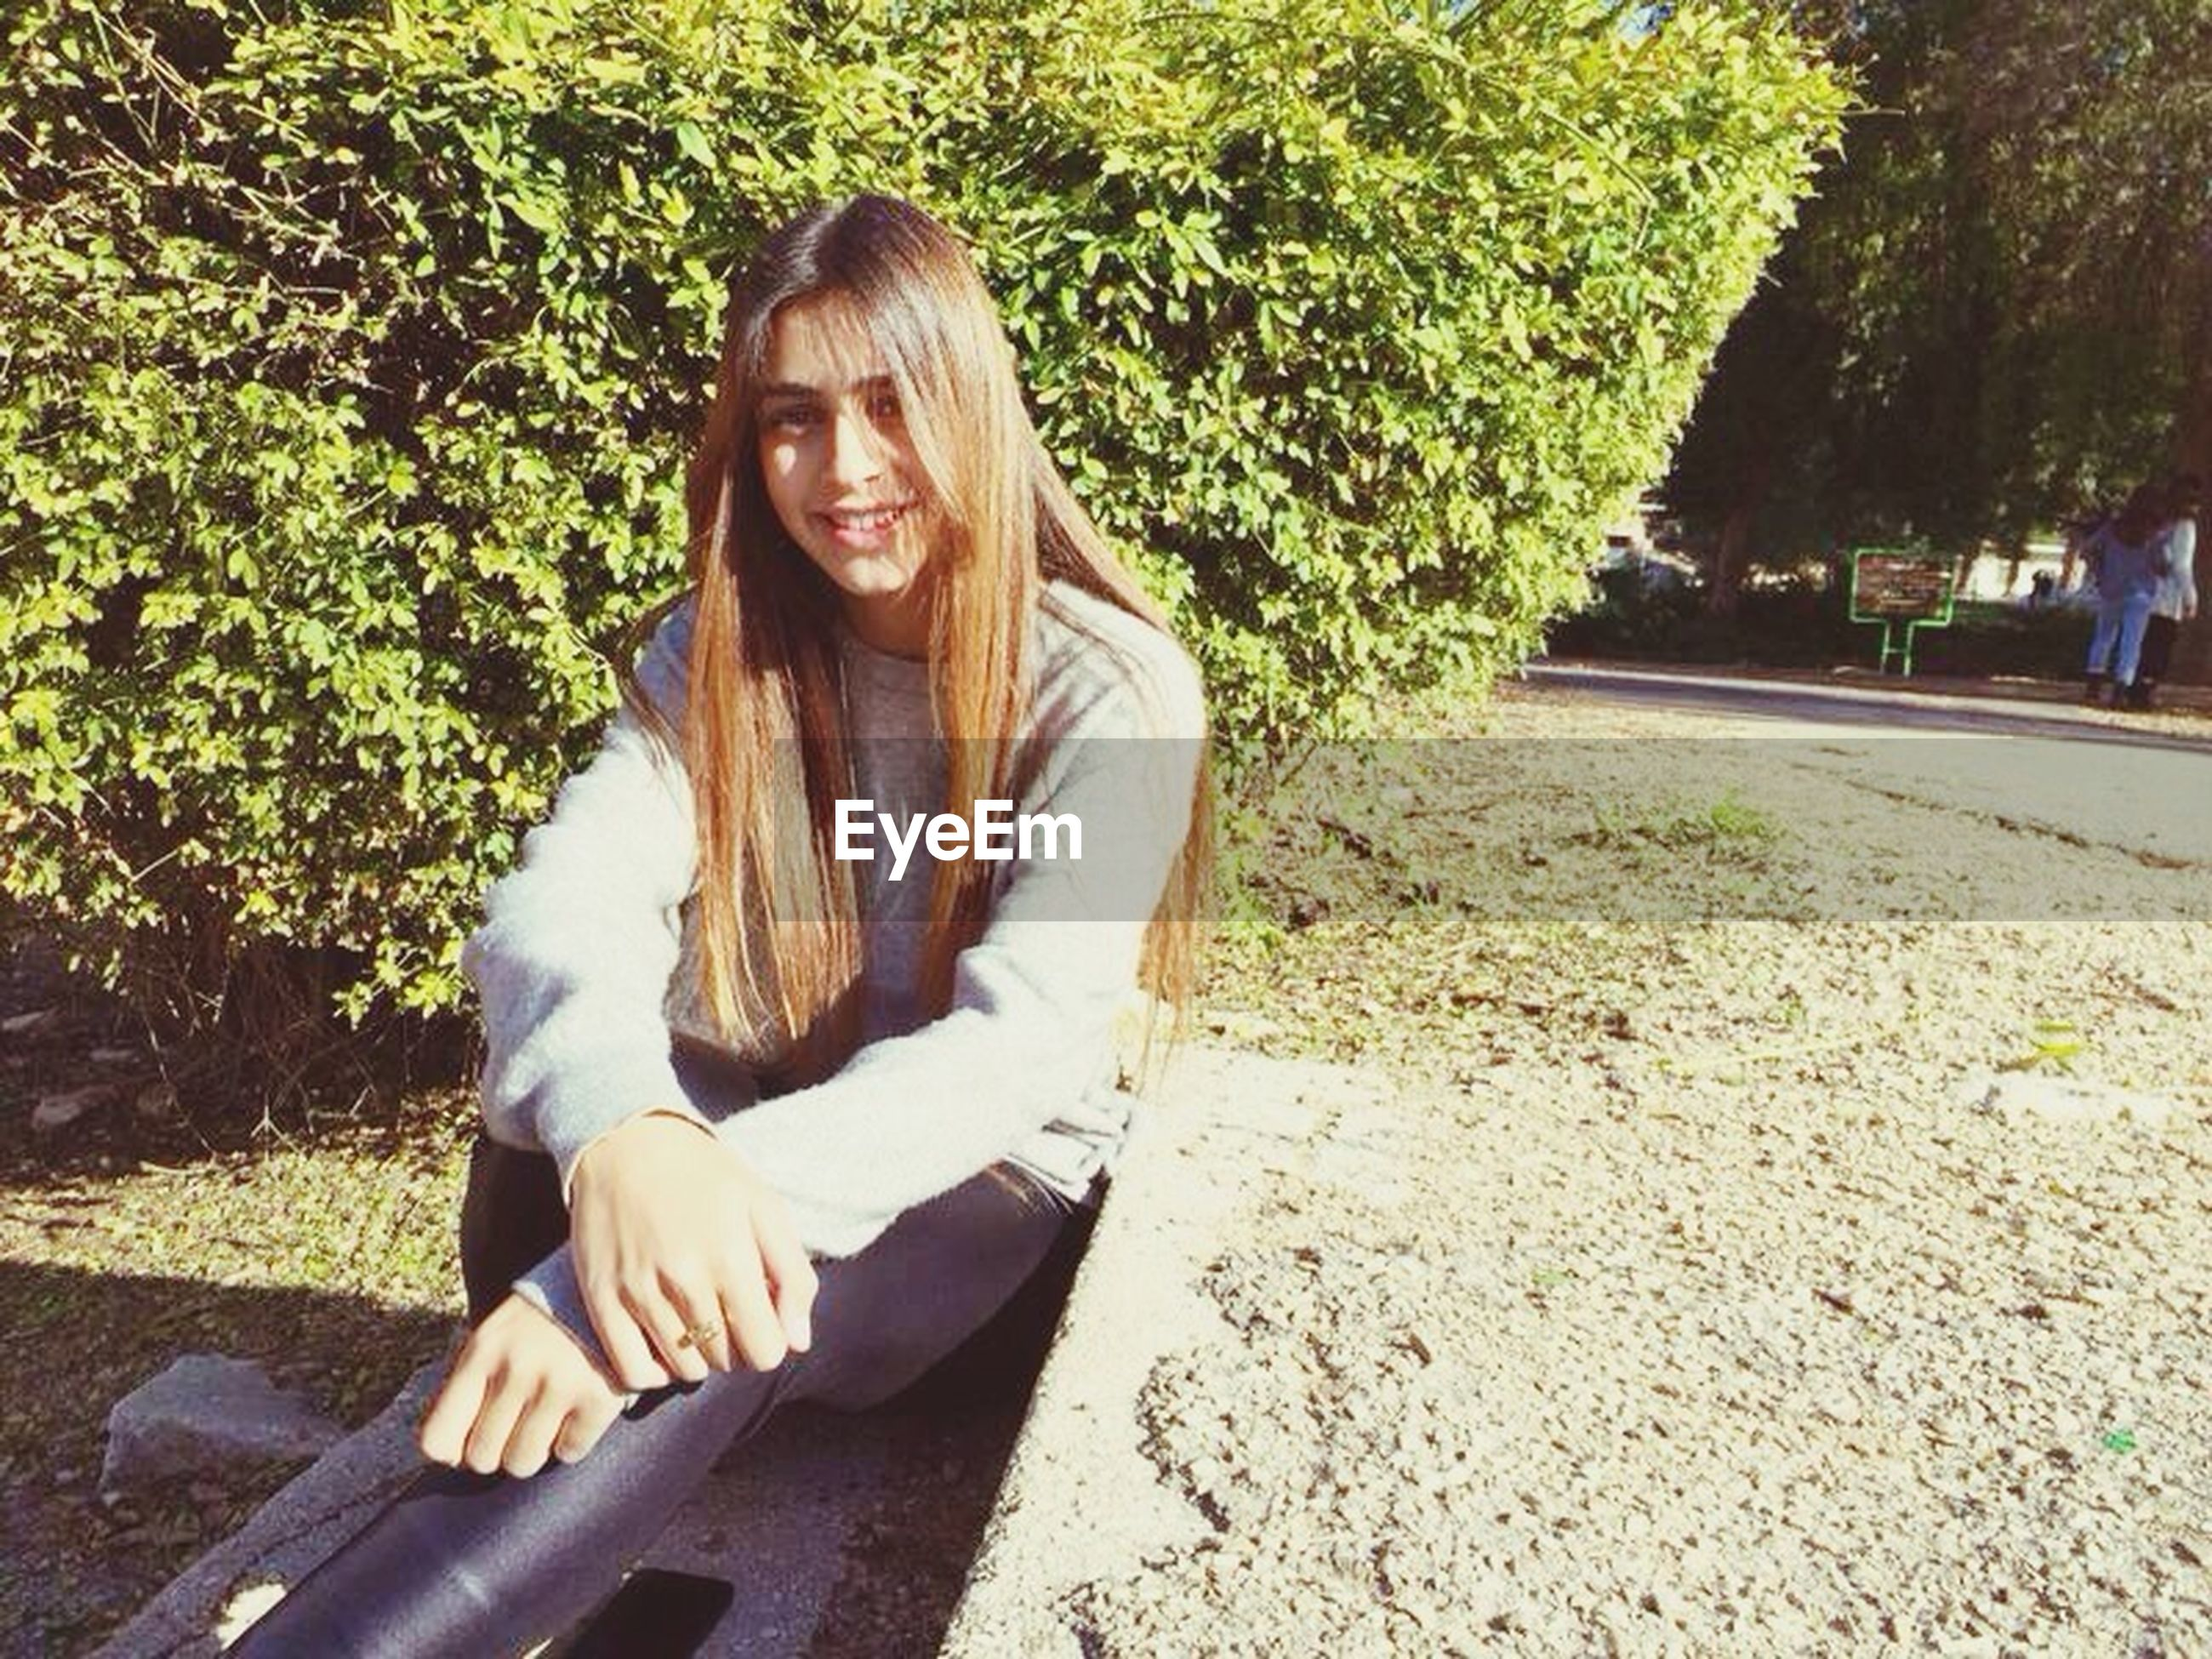 lifestyles, person, casual clothing, leisure activity, young adult, sitting, young women, portrait, looking at camera, smiling, tree, relaxation, front view, three quarter length, waist up, full length, sunlight, park - man made space